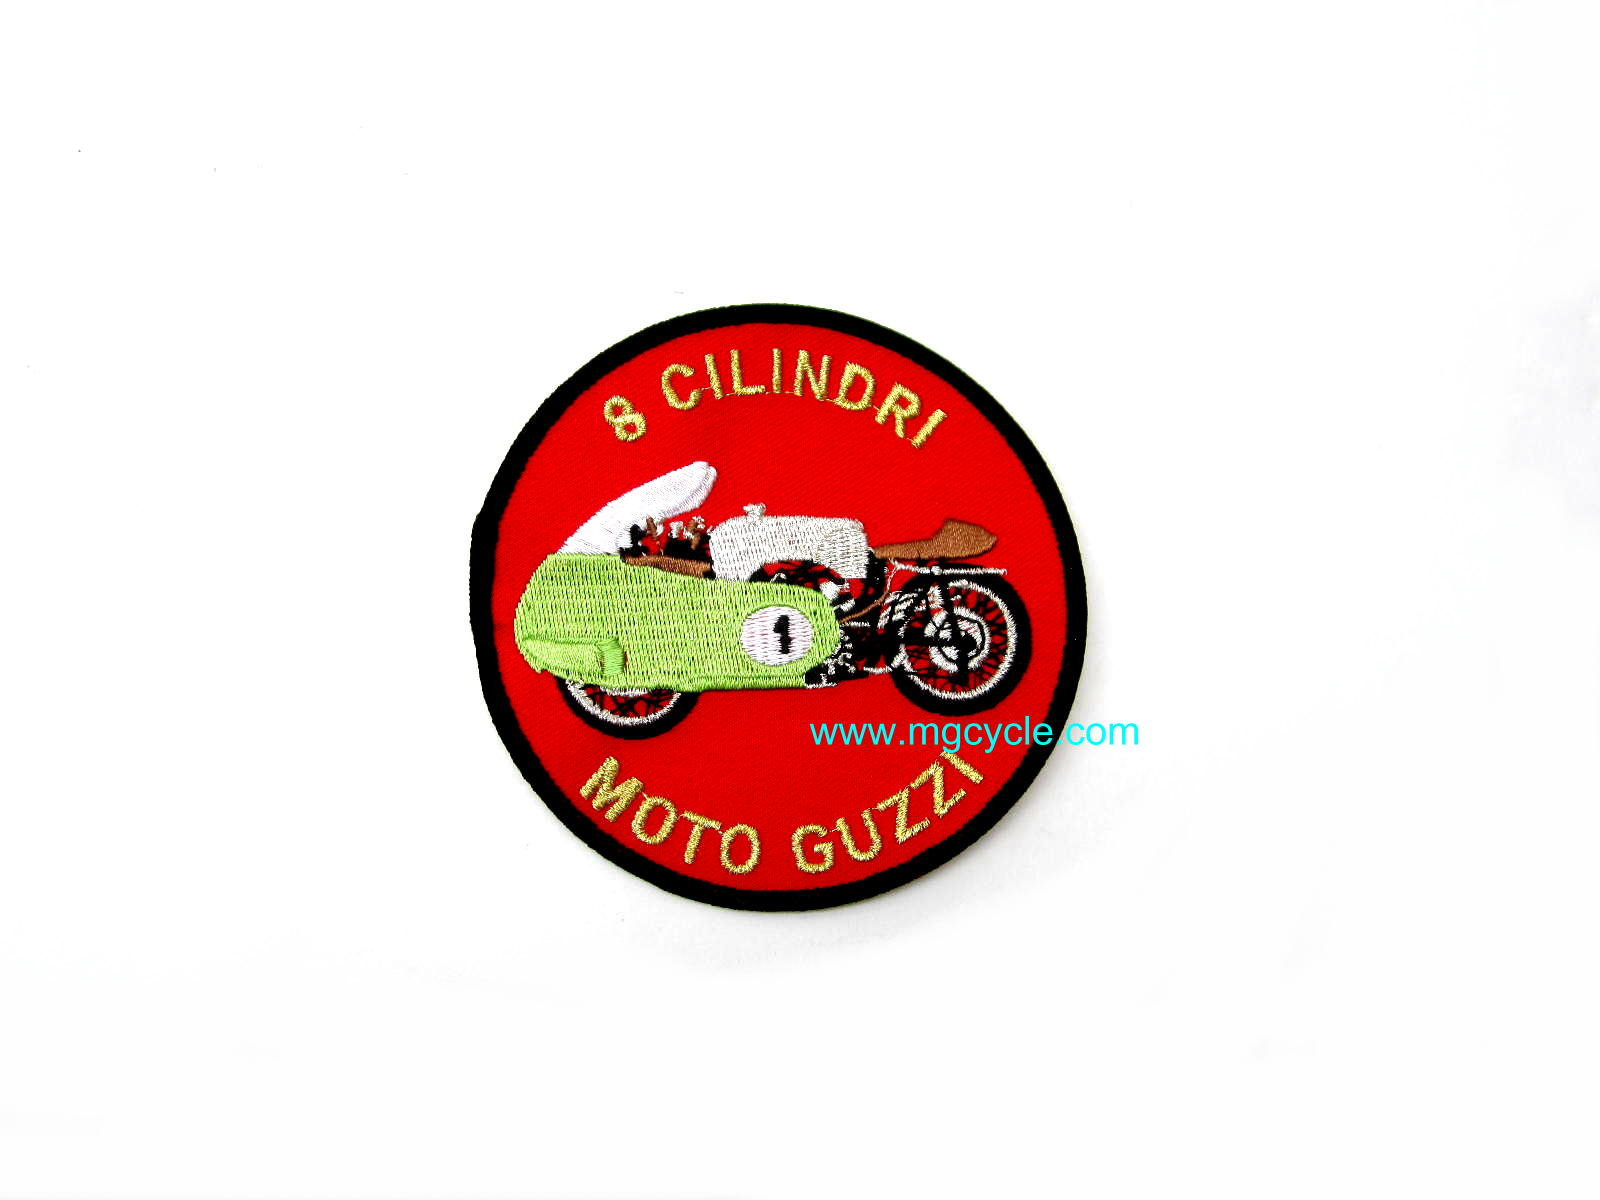 Moto Guzzi V8 patch, embroidered, 4 inch diameter